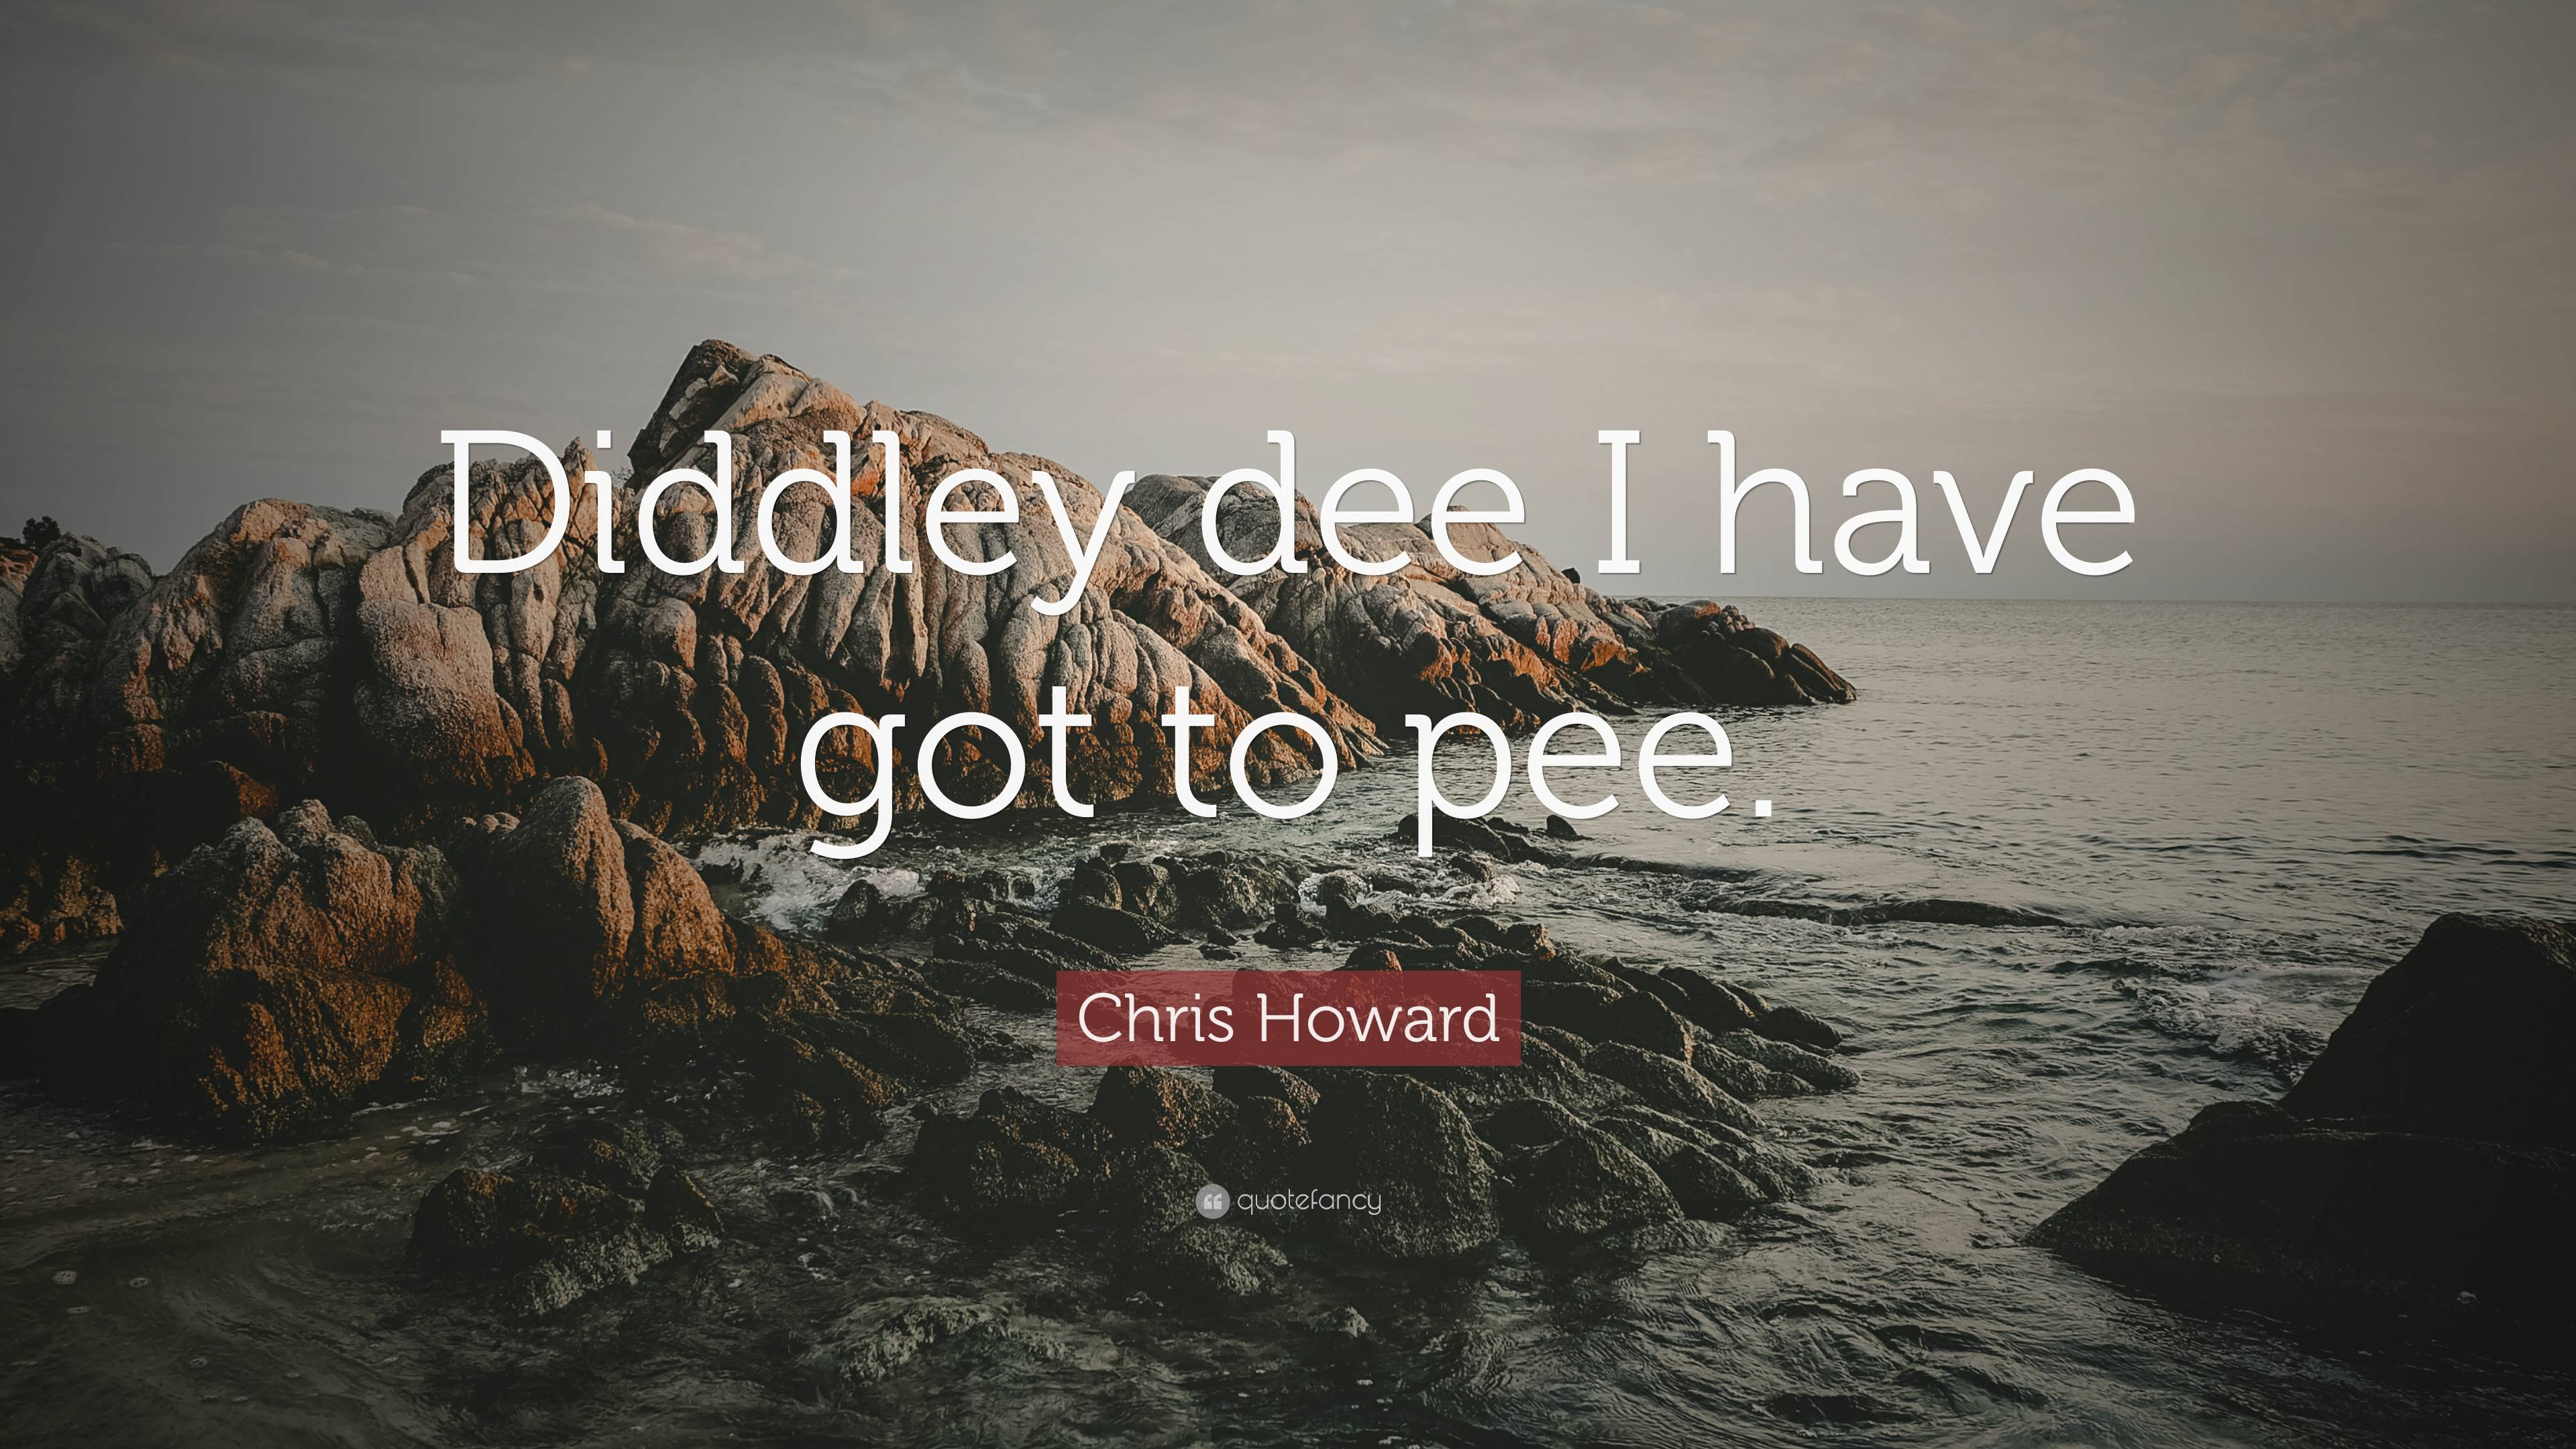 Chris Howard Quotes 6 Wallpapers Quotefancy I not sure this's complete win quotes. chris howard quotes 6 wallpapers